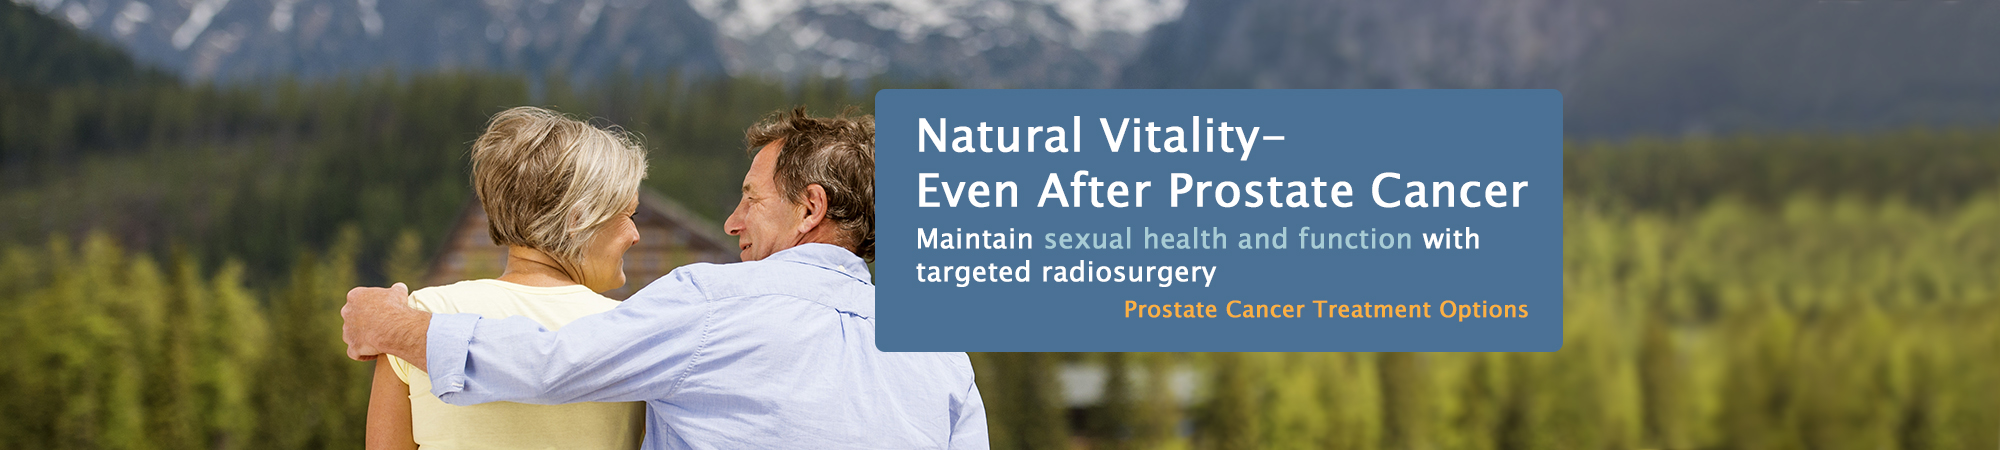 Natural Vitality after Prostate Cancer | ACC